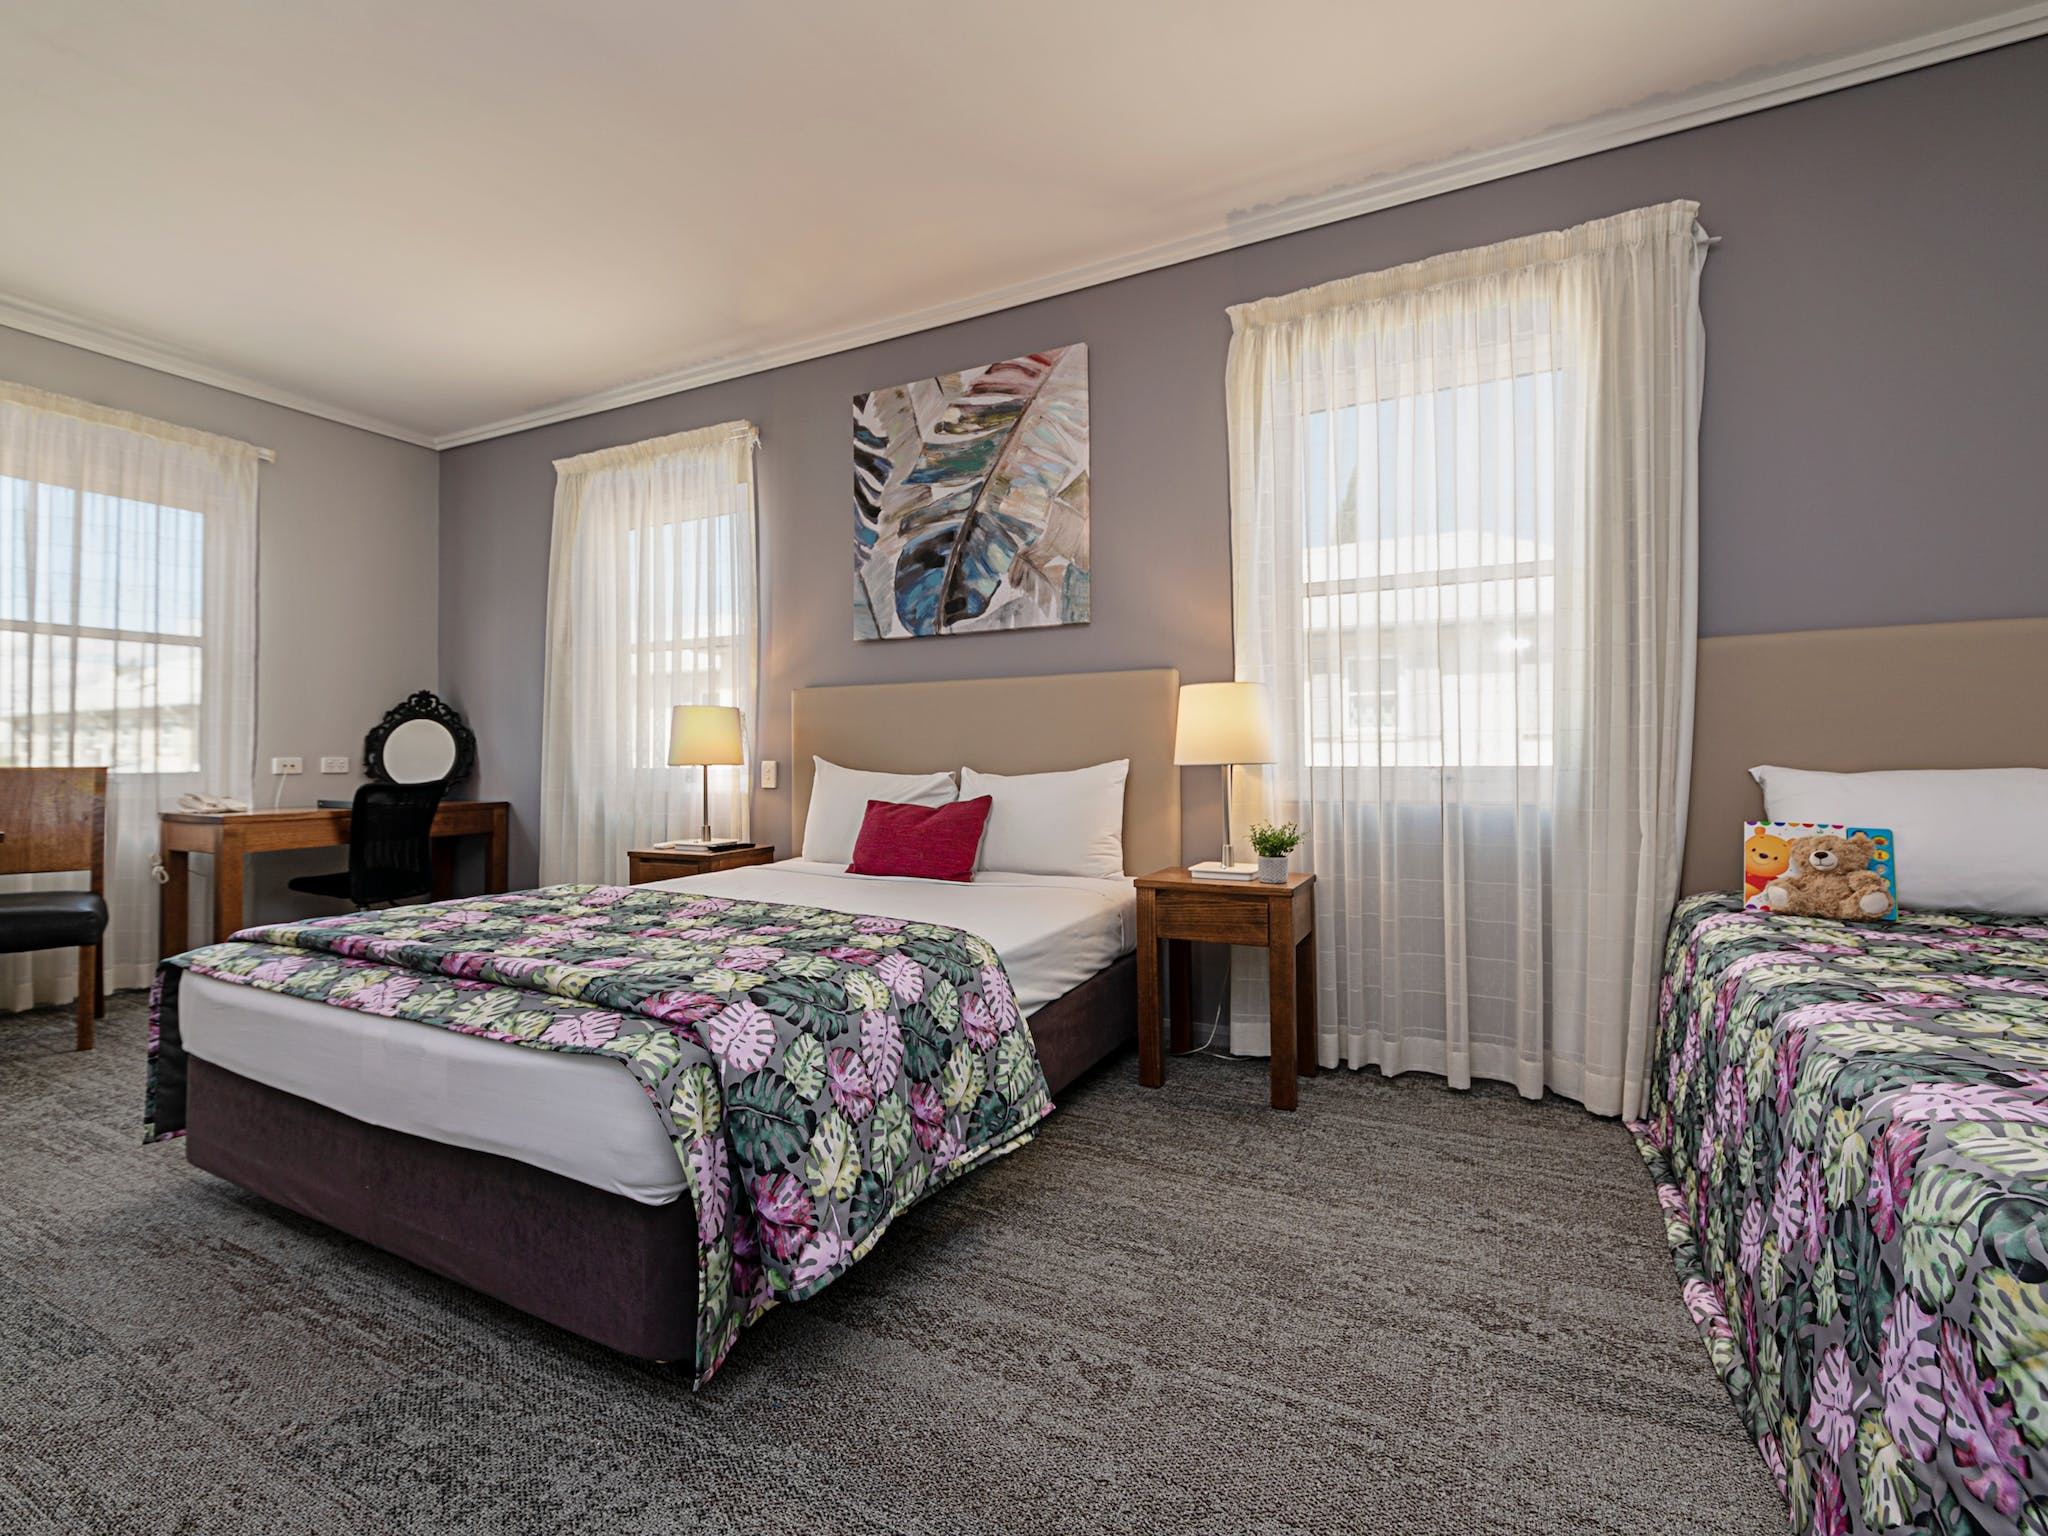 Families are well catered for with a variety of room configurations